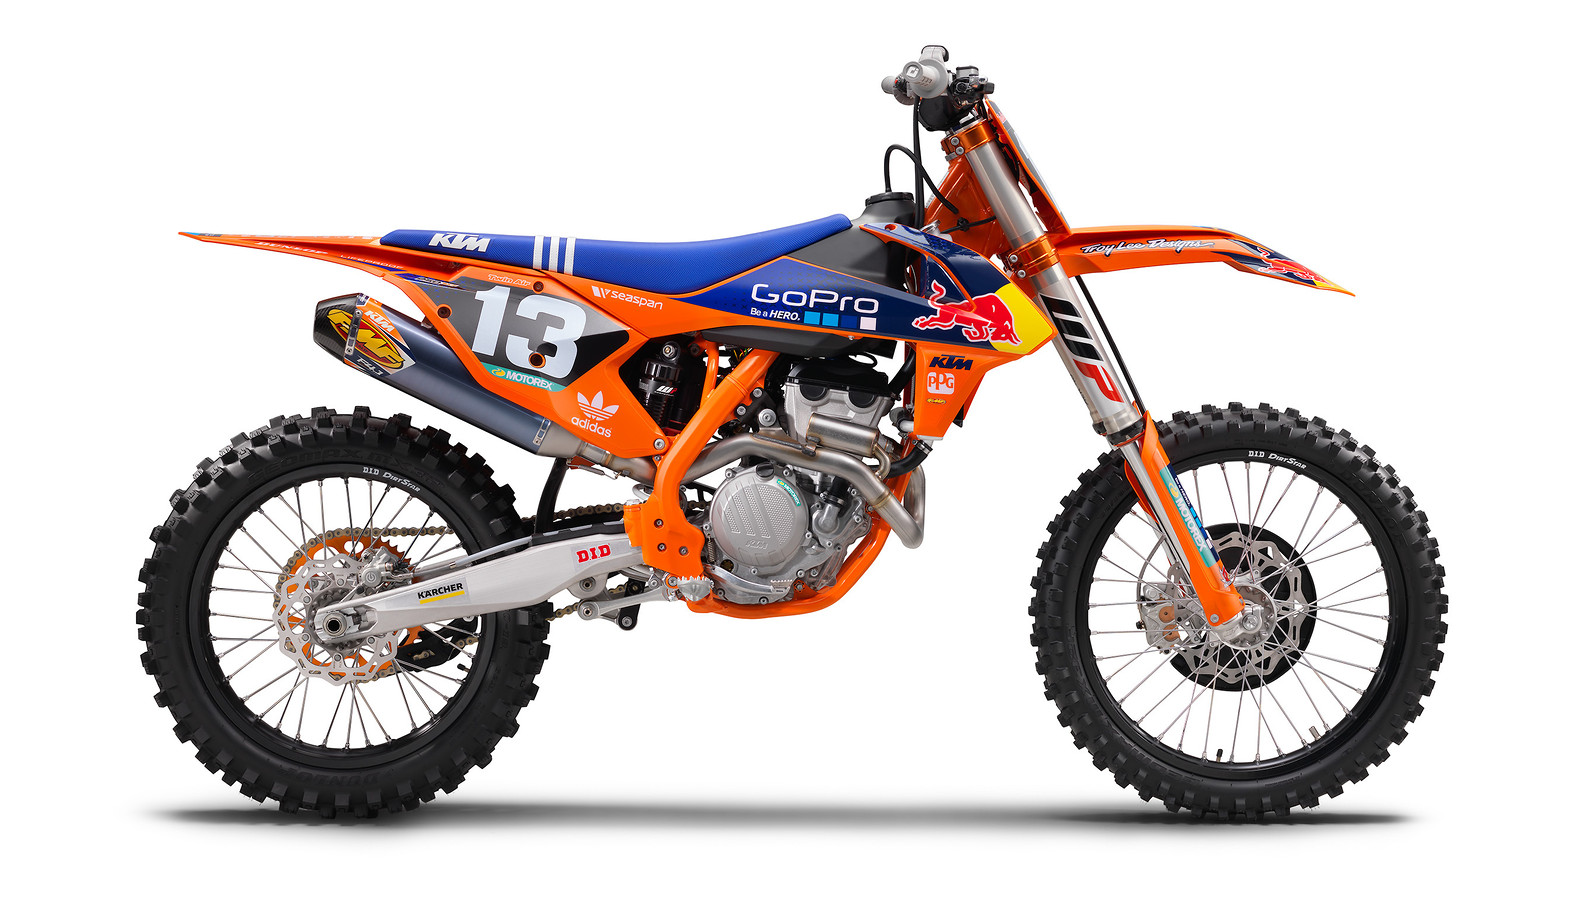 Reviews Com Product Reviews And Comparisons Of 2019 >> 2016 KTM 250 SX-F Factory Edition - Reviews, Comparisons, Specs - Motocross / Dirt Bike Bikes ...